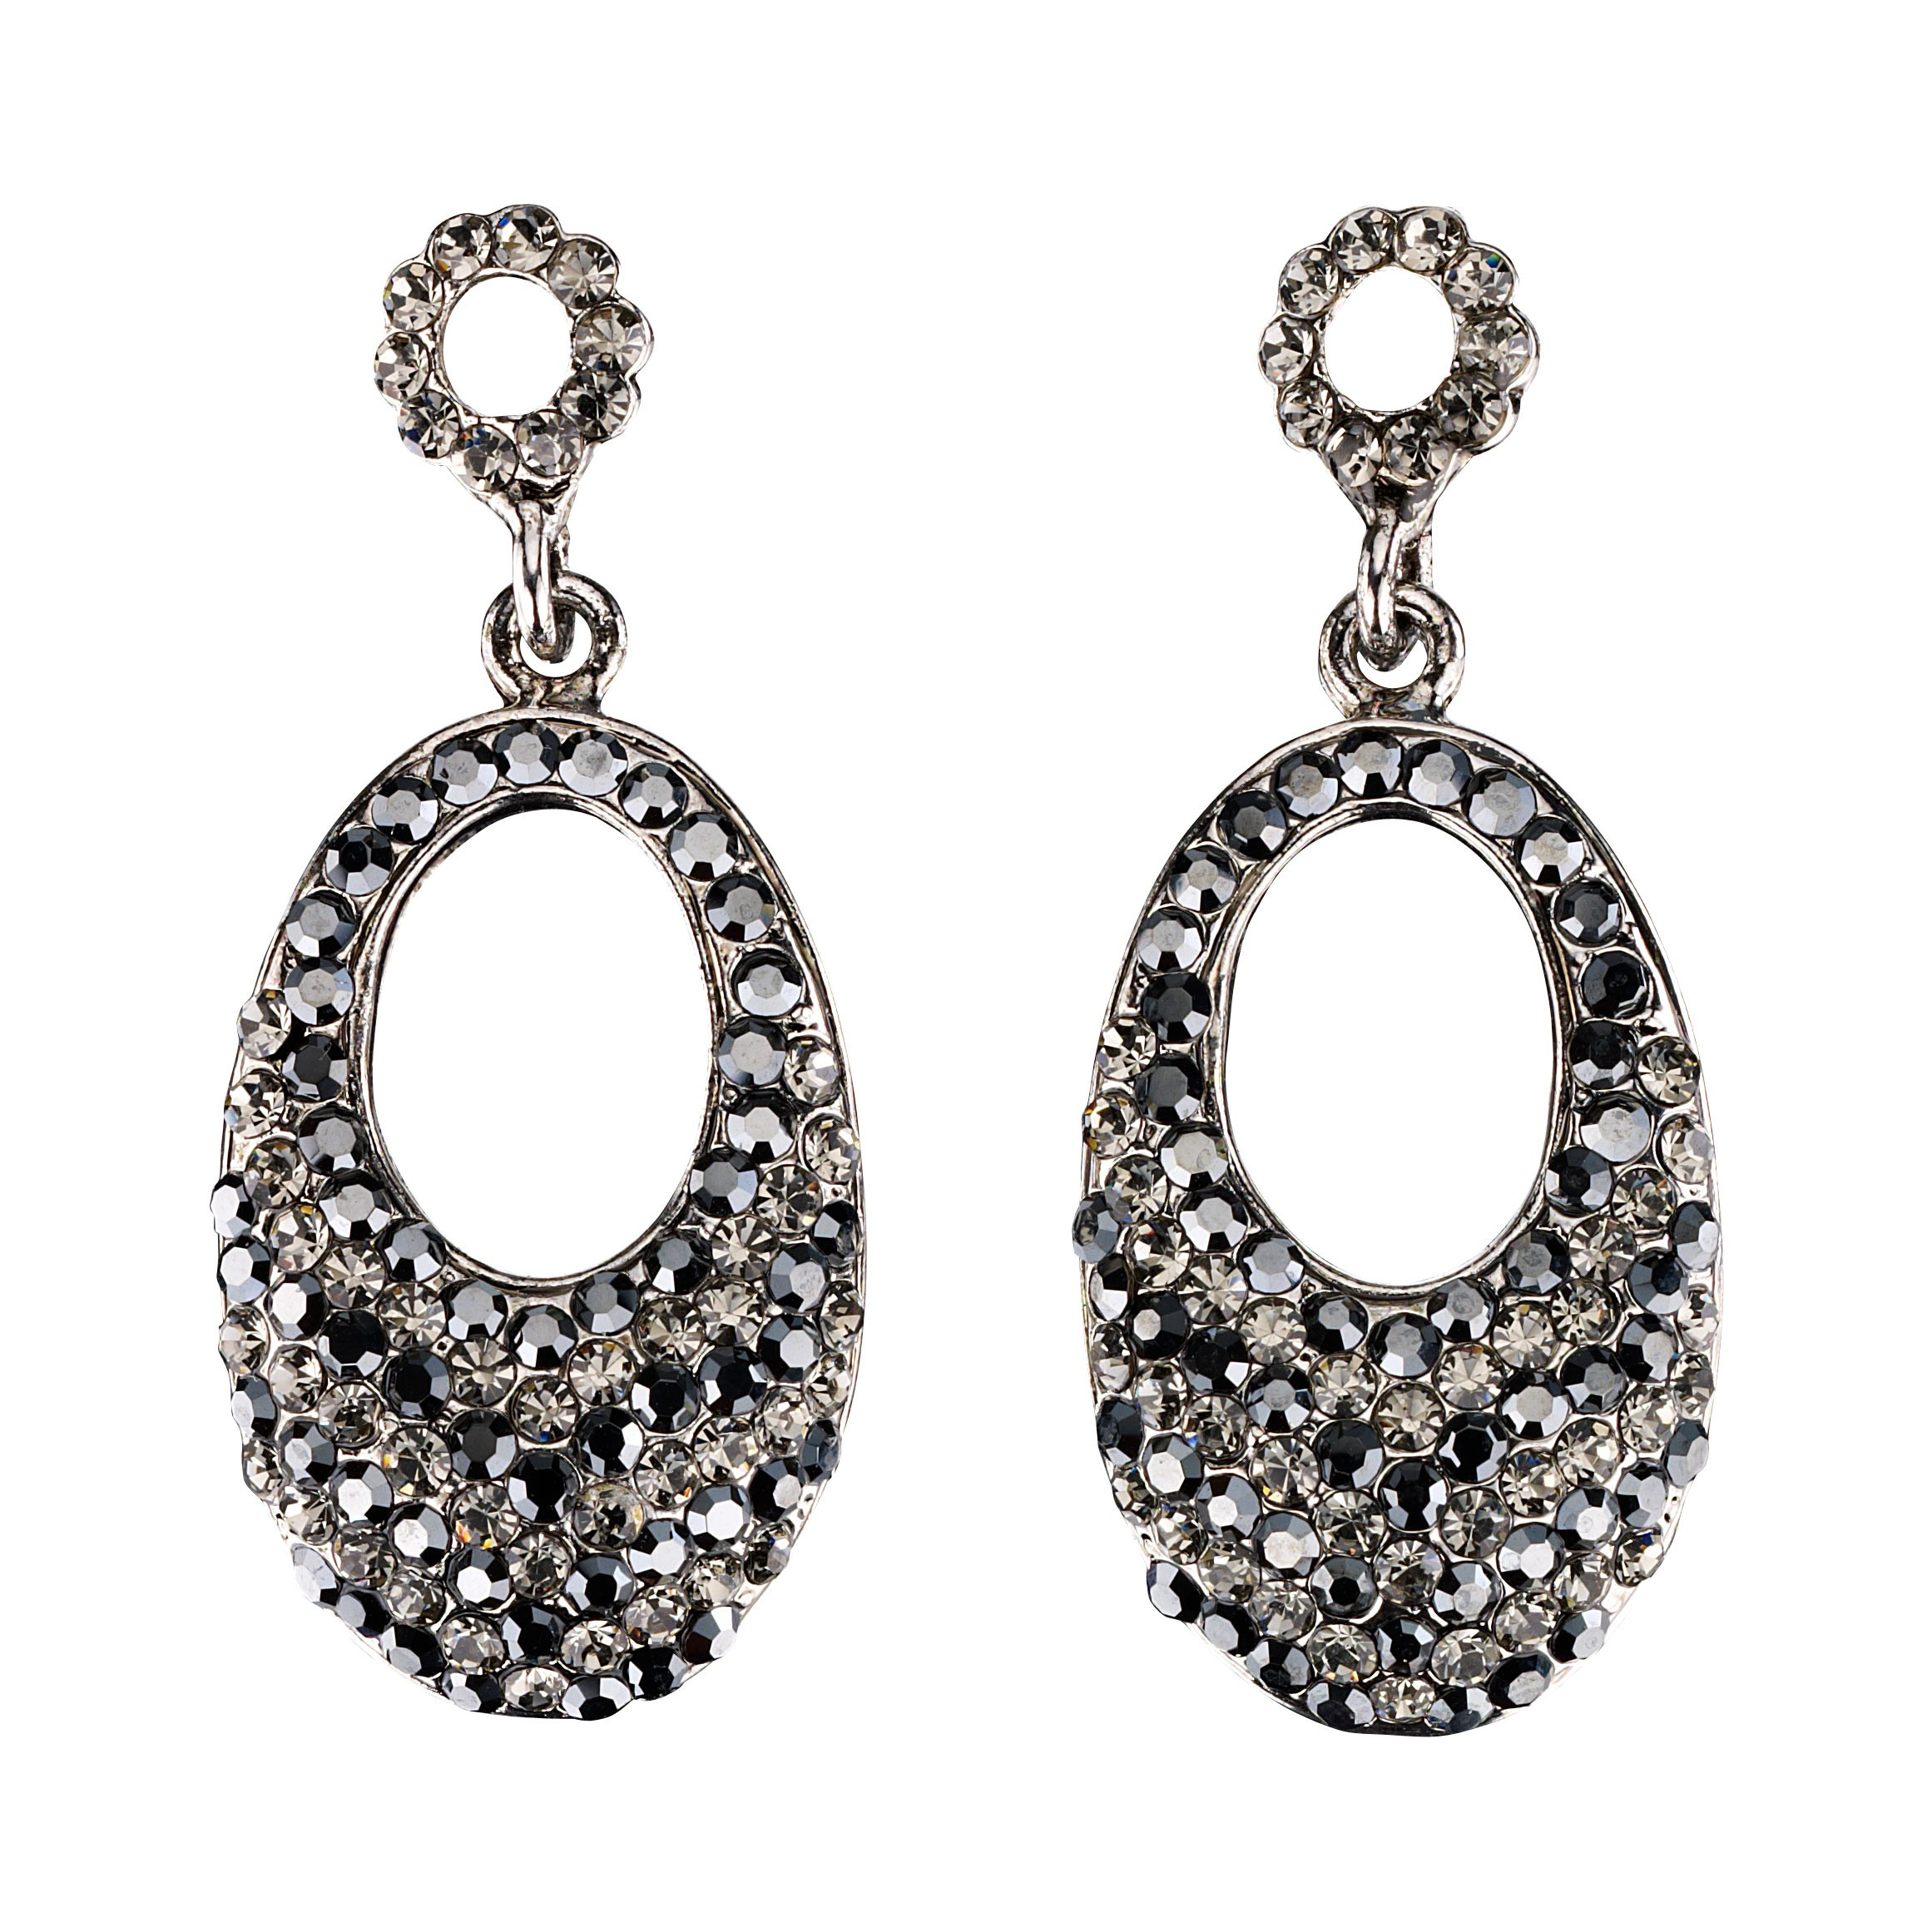 a65adde76768b5 Oval Crystal Drop Earrings with Black Diamond and Jet Black Swarovski  Crystal